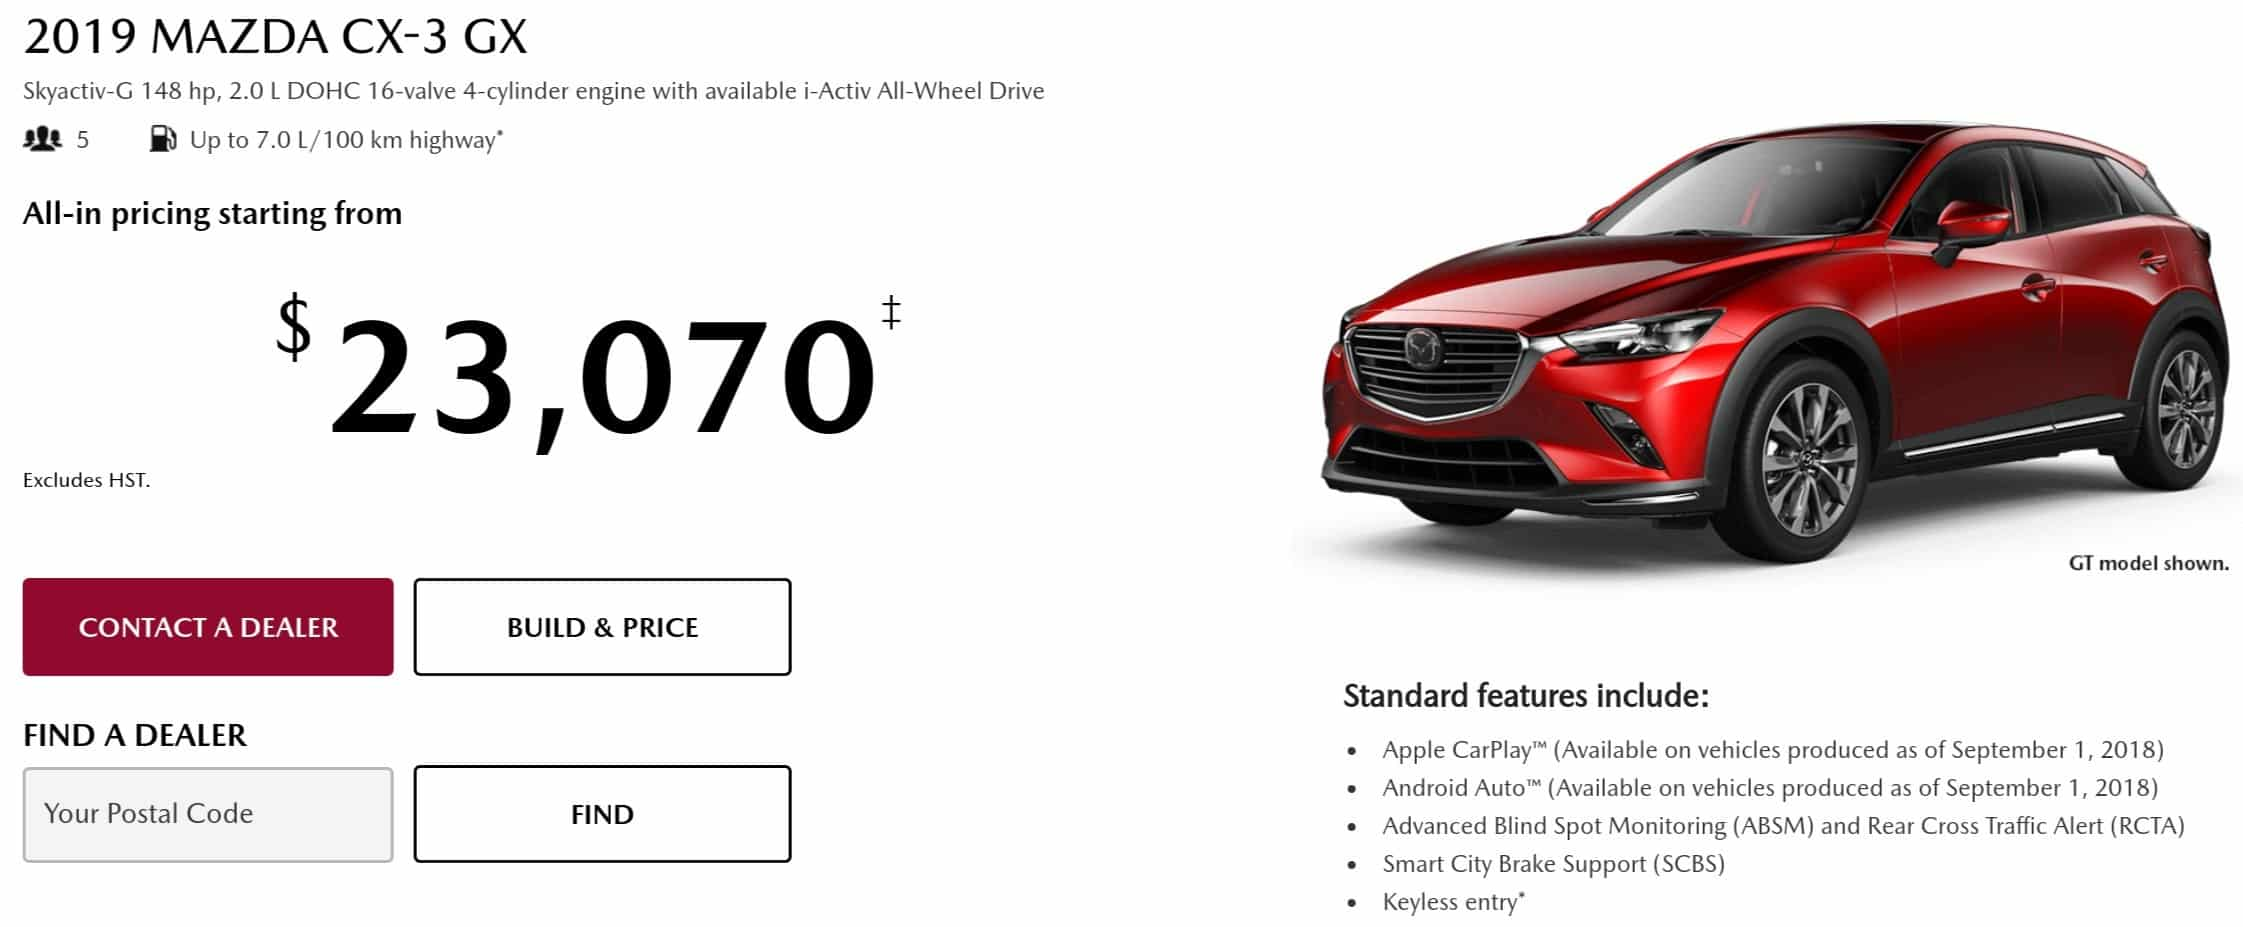 2019 Mazda CX 3 is one of the best new car deals in Canada